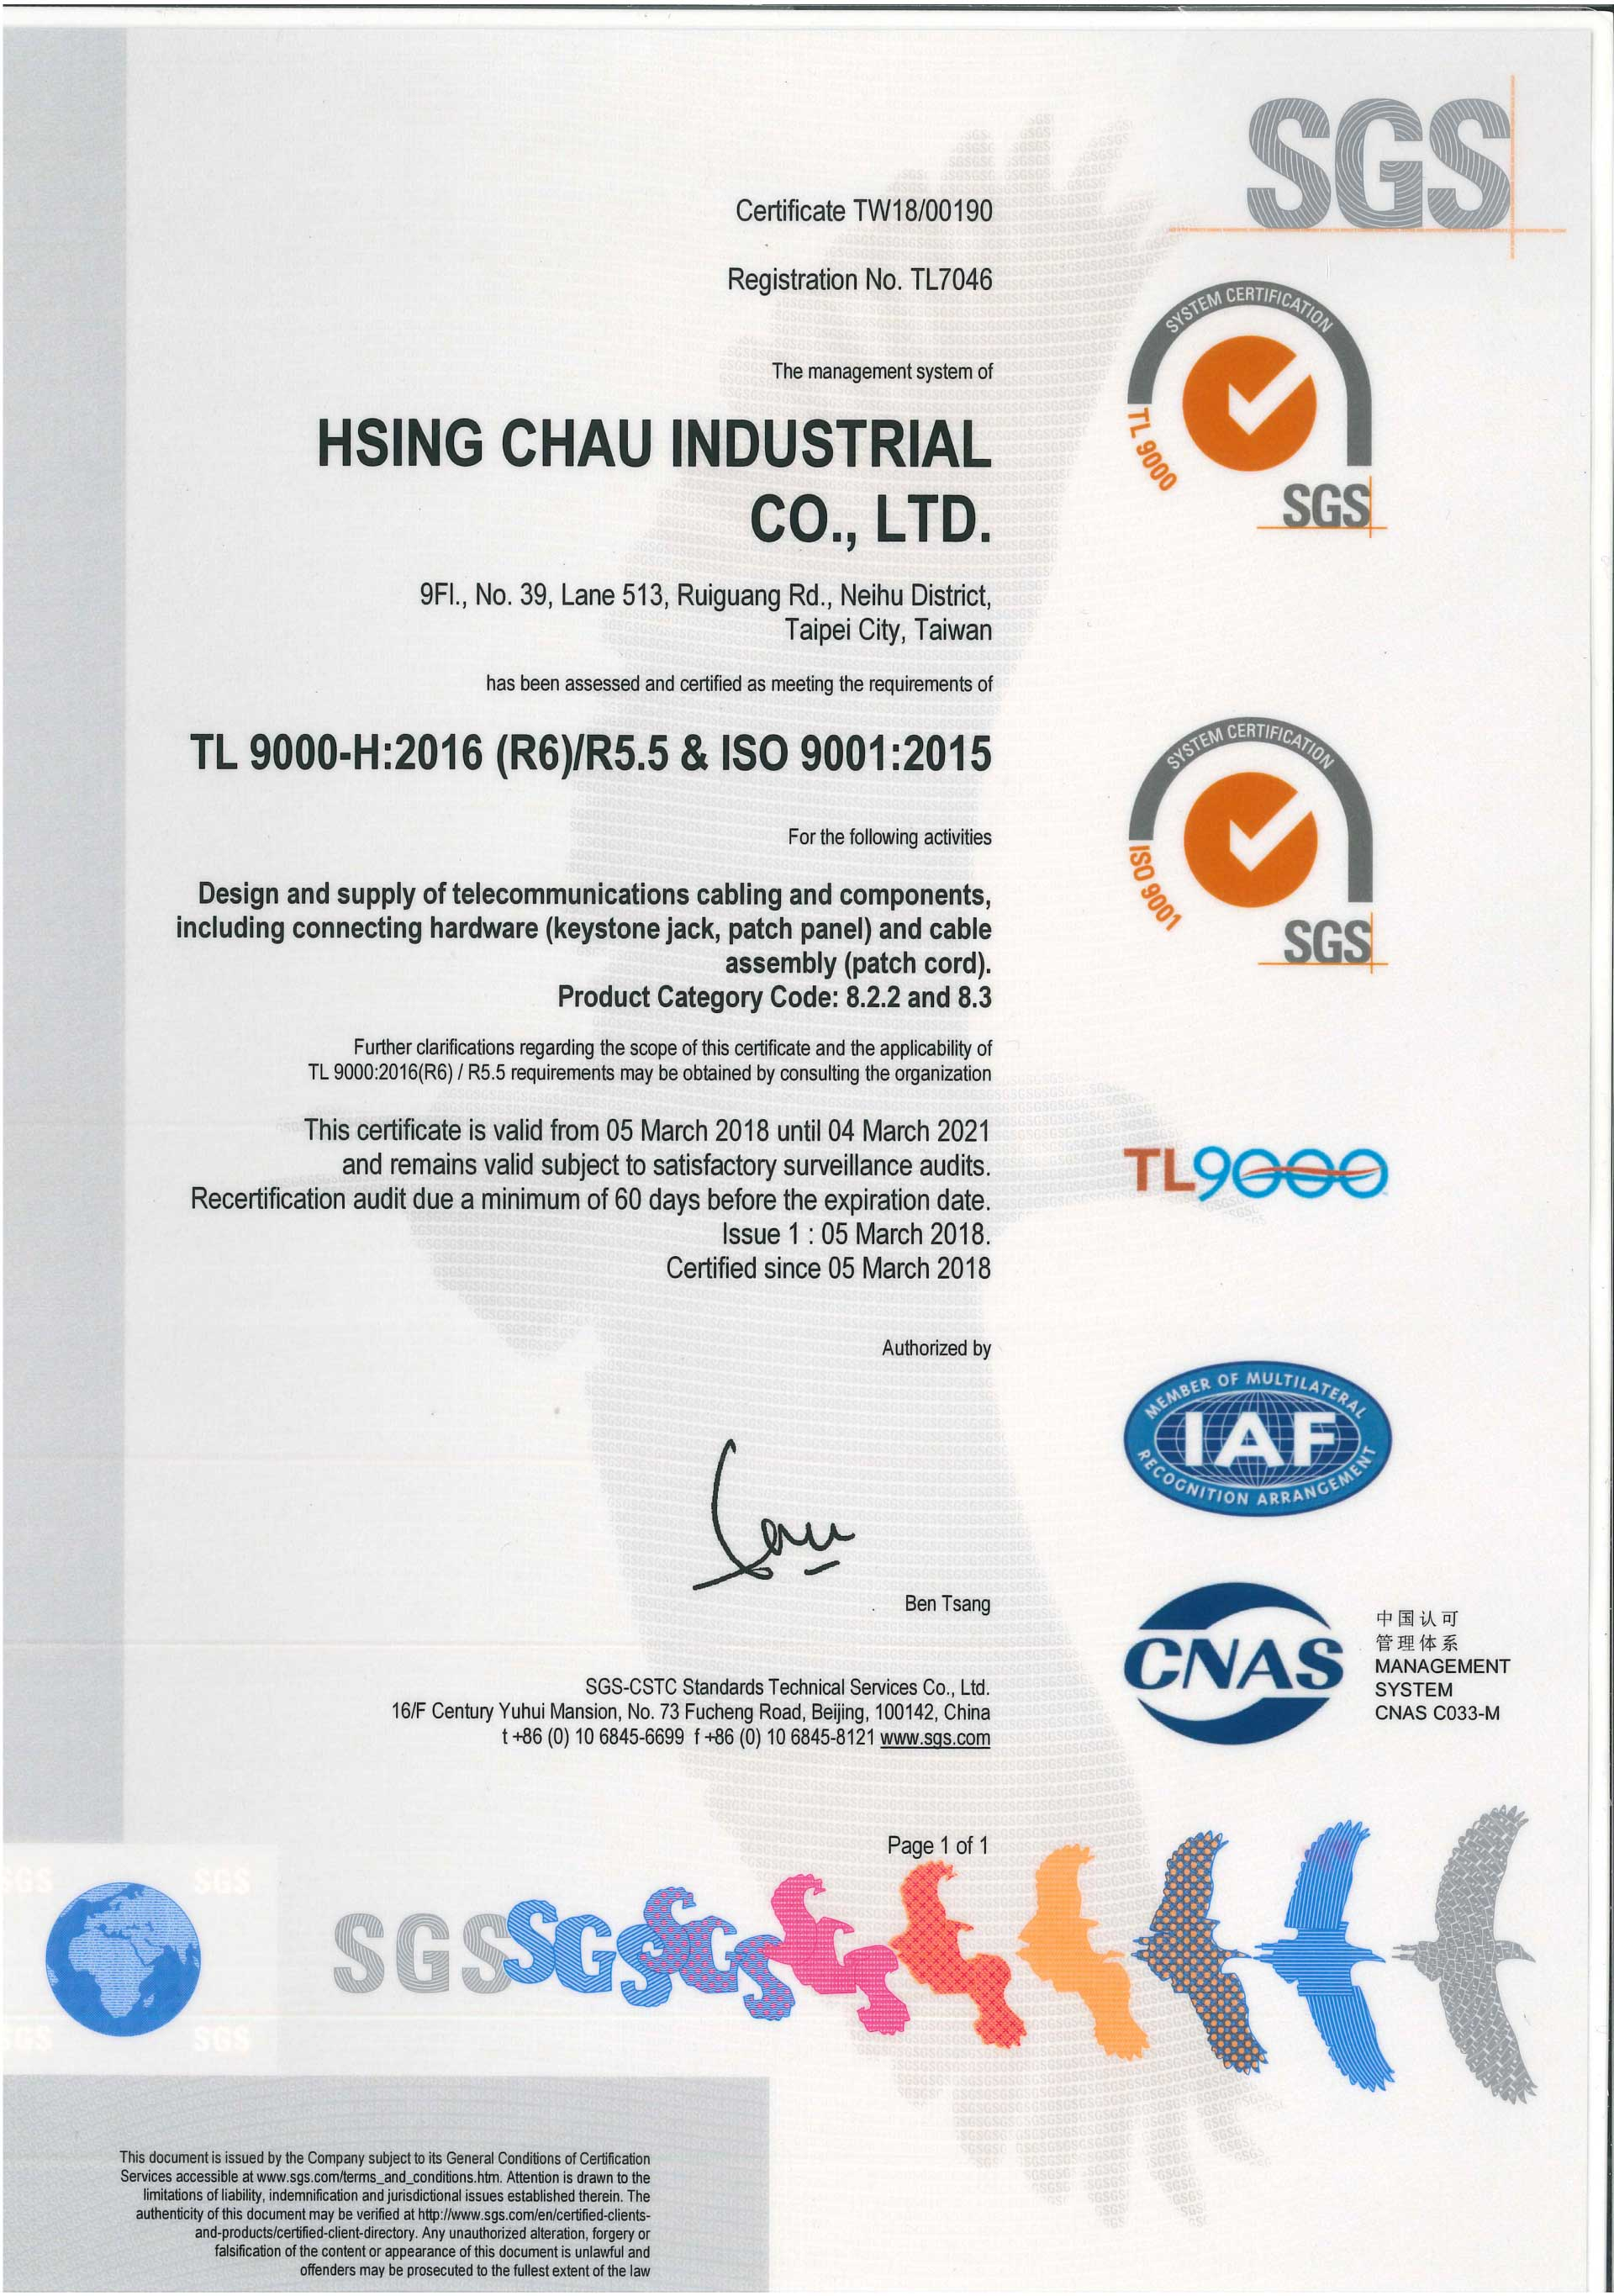 HCI achieves TL 9000 and ISO 9001:2015 Quality Management Certifications